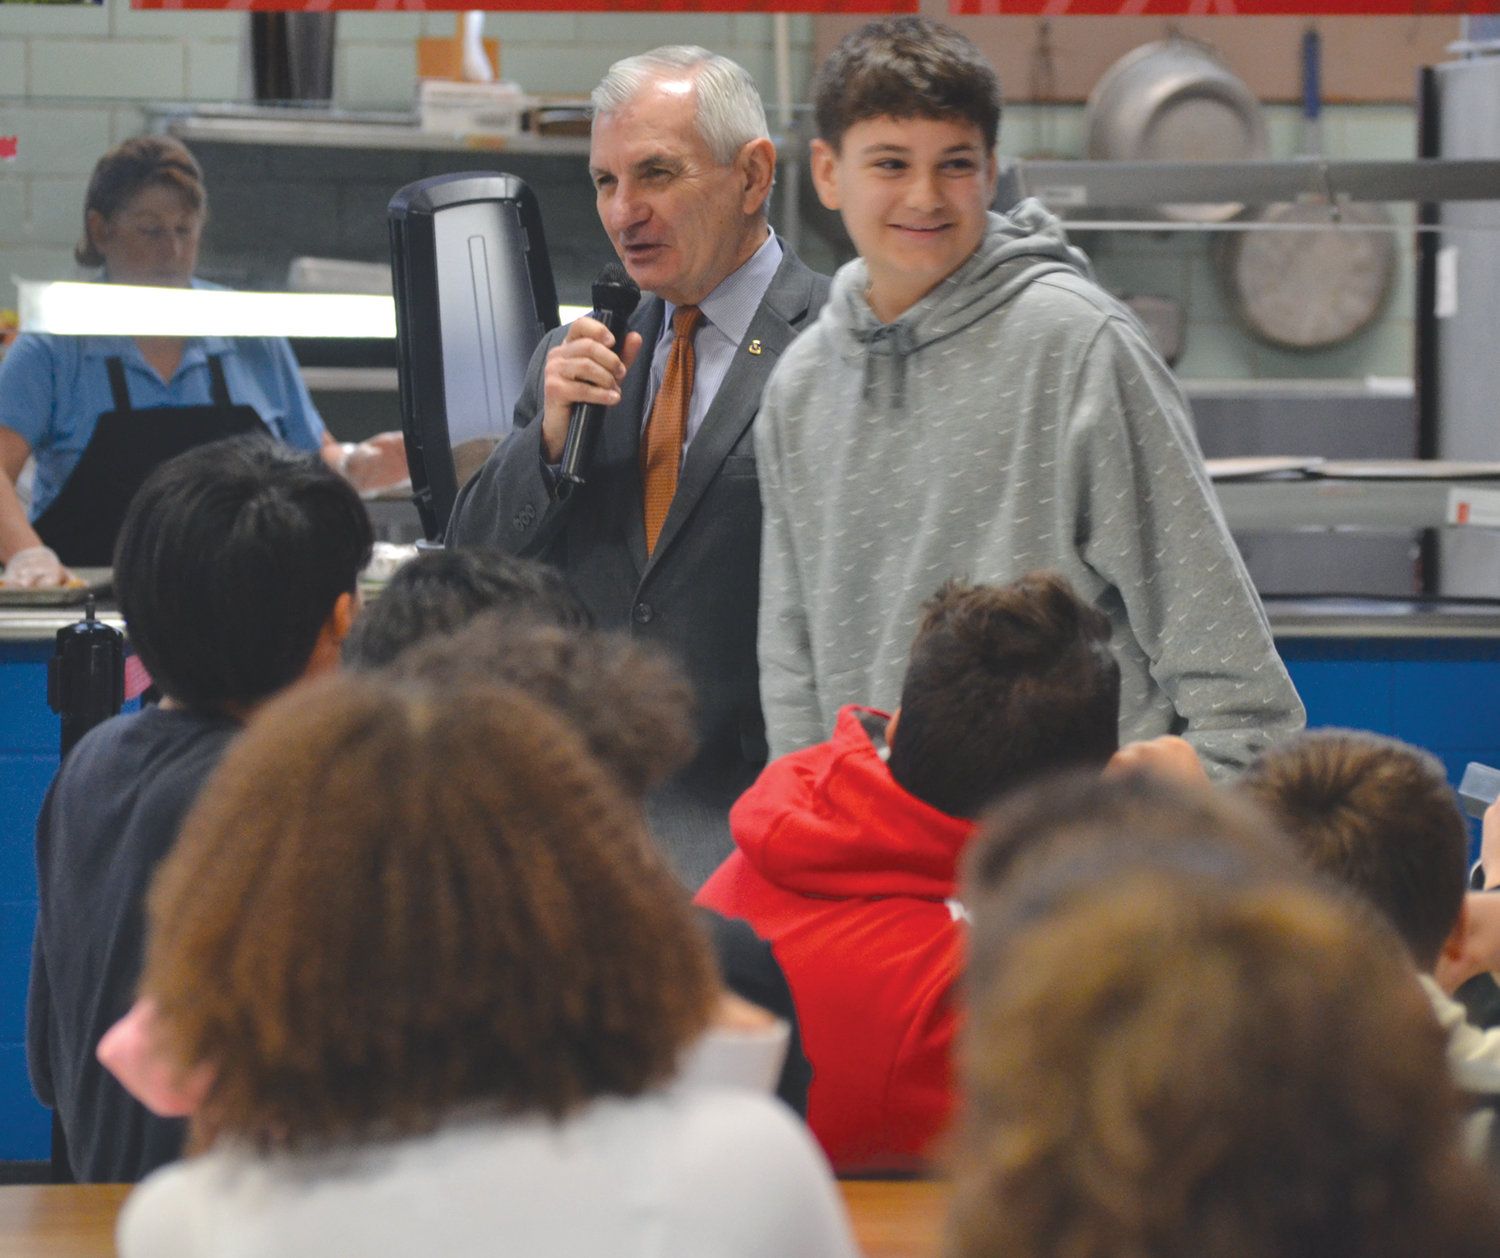 SMILES ALL AROUND: Ferri Middle School student Daniel Wulf, who facilitated U.S. Sen. Jack Reed's visit, had the honor of providing an introduction.